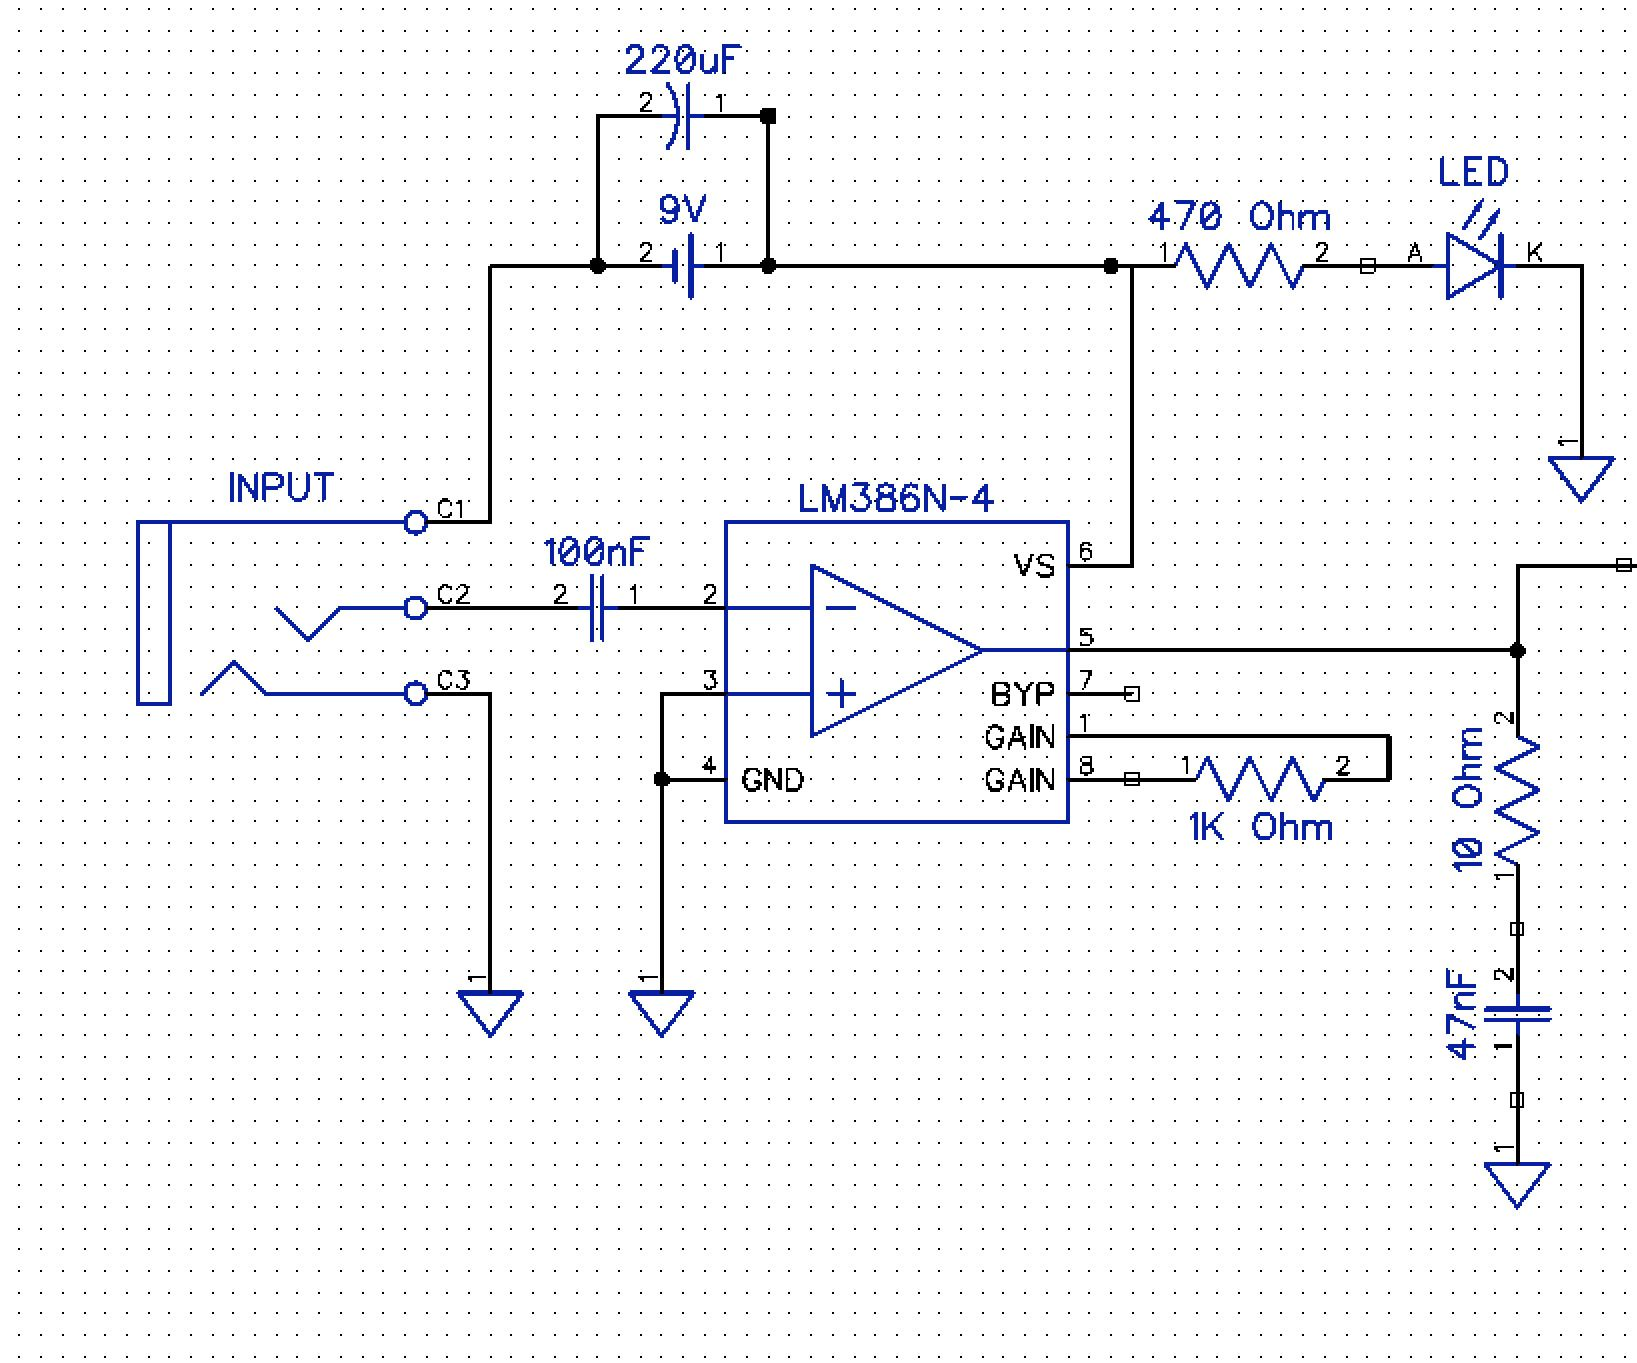 hight resolution of from schematic to protoboard building a simple lm386 guitar amp on a dip protoboard